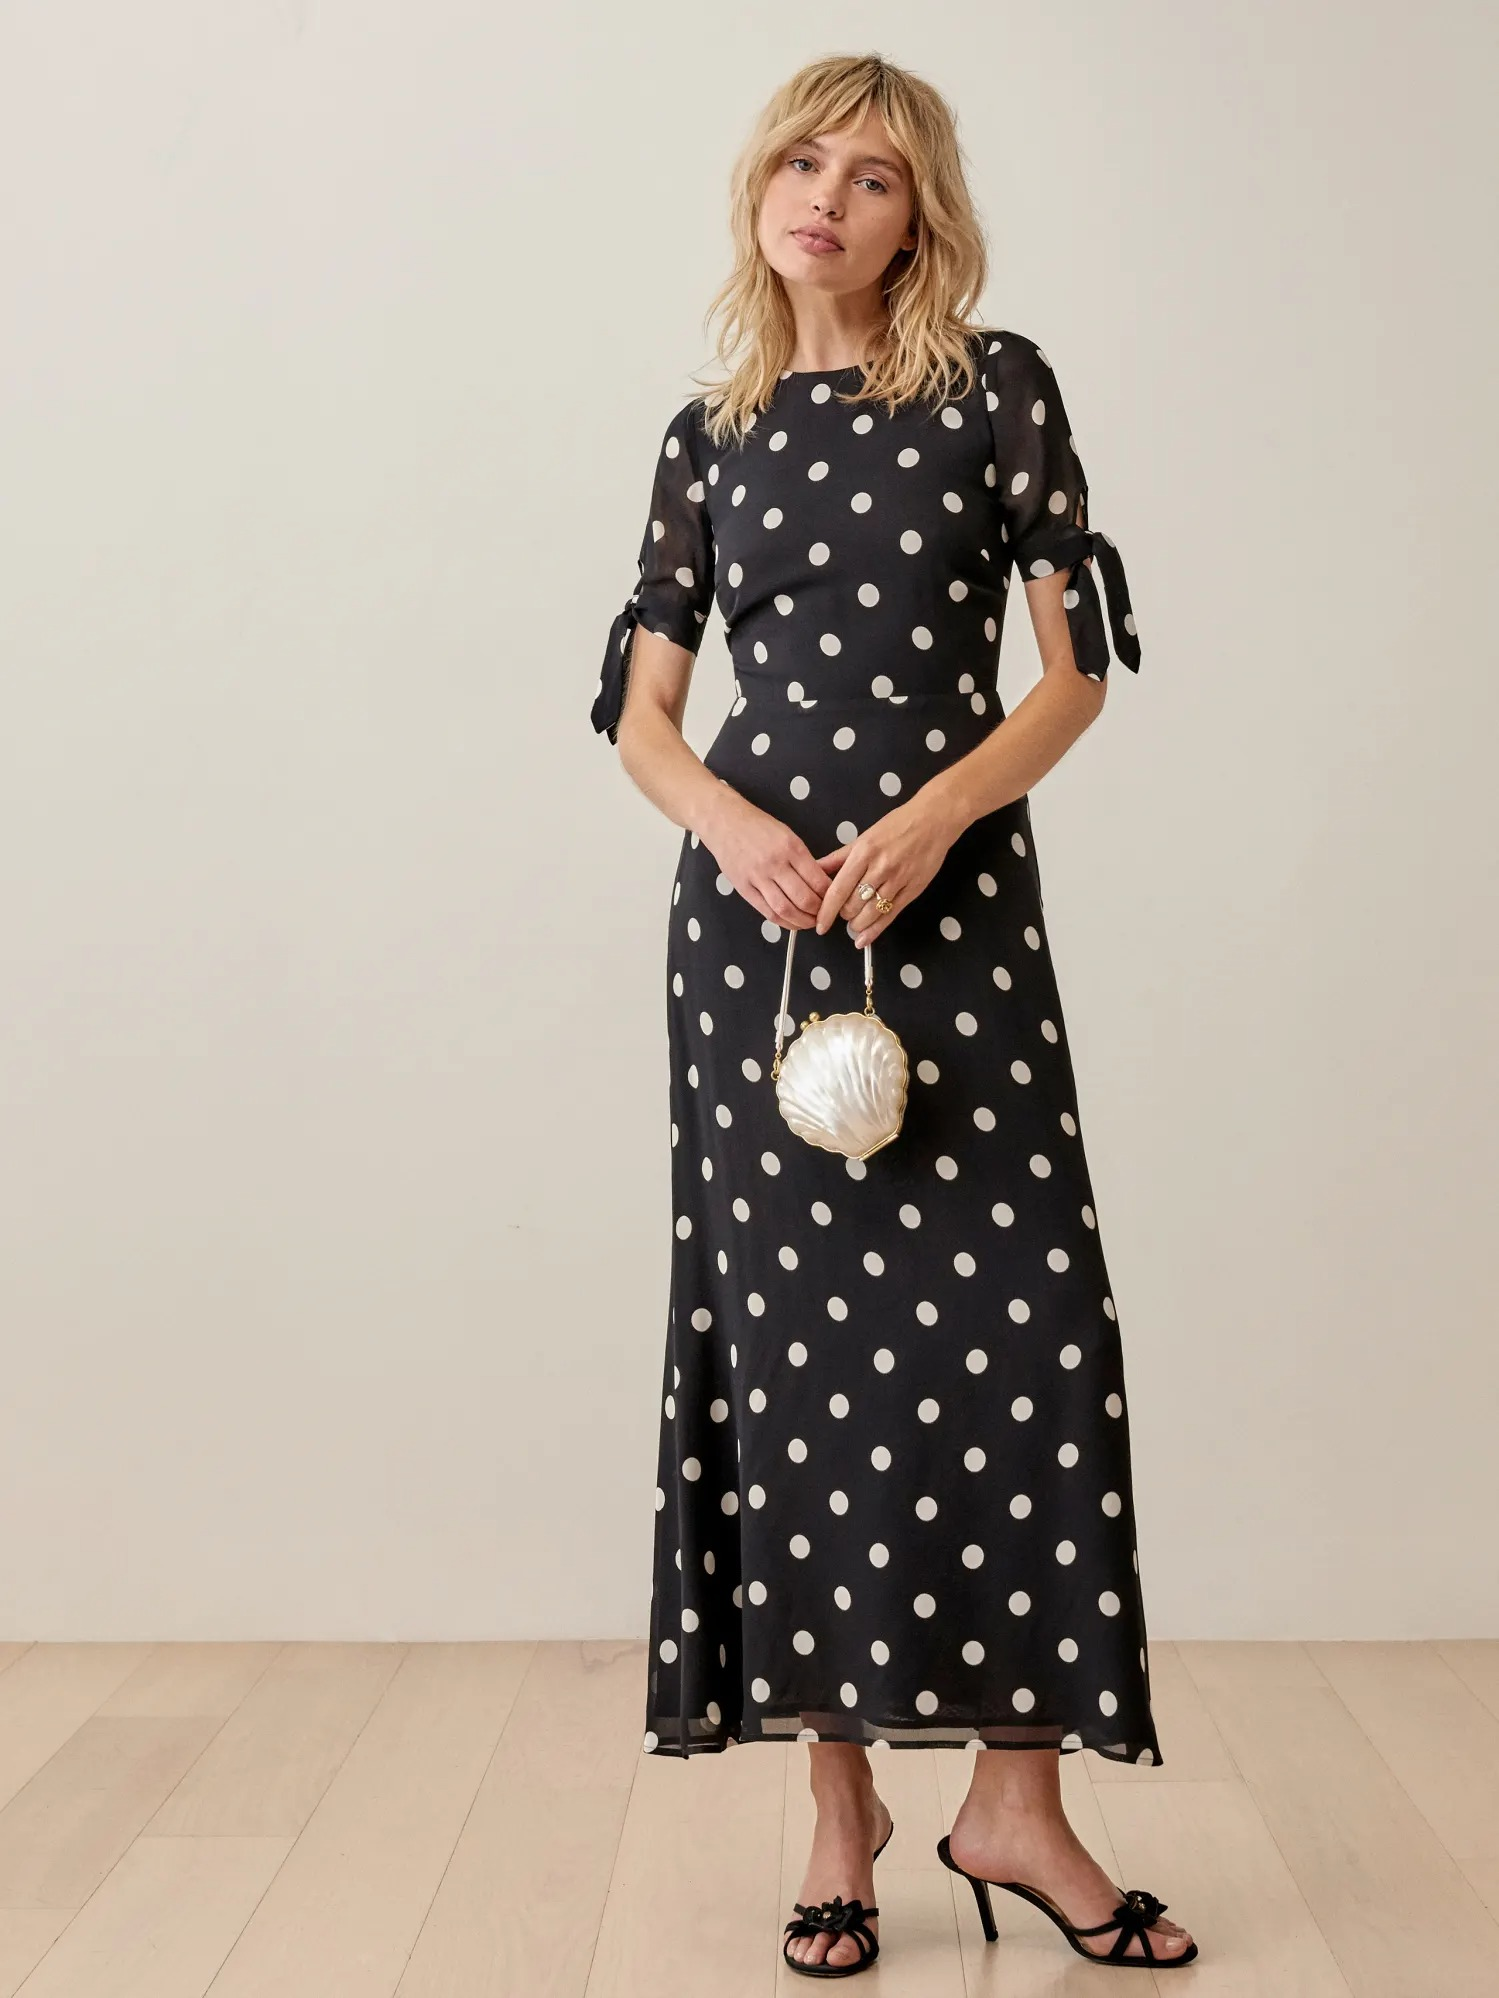 ankle length polka dot black and white wedding dresses with bow ties on the sleeves